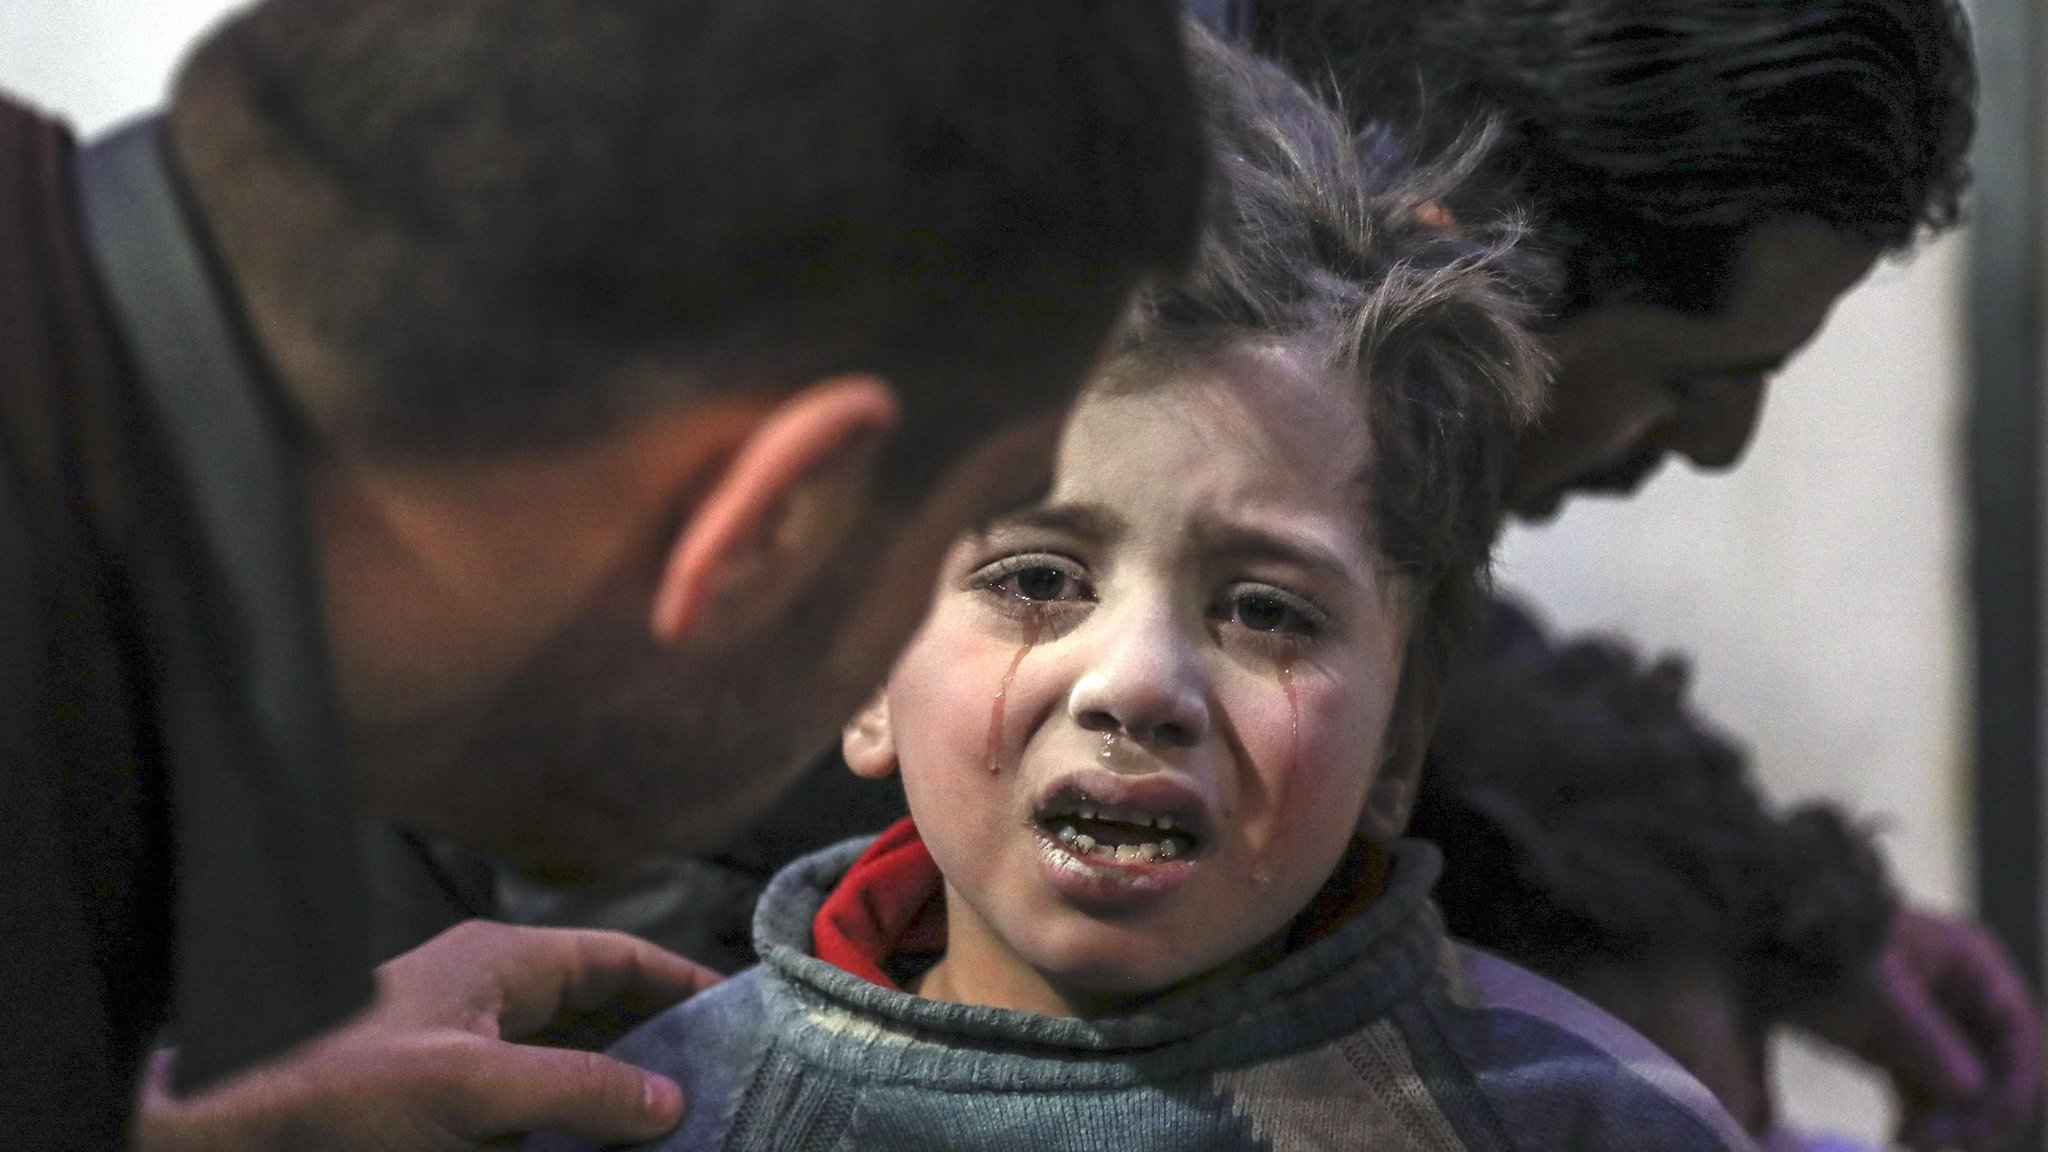 Syria war: War crimes committed in Eastern Ghouta battle - UN | BBC